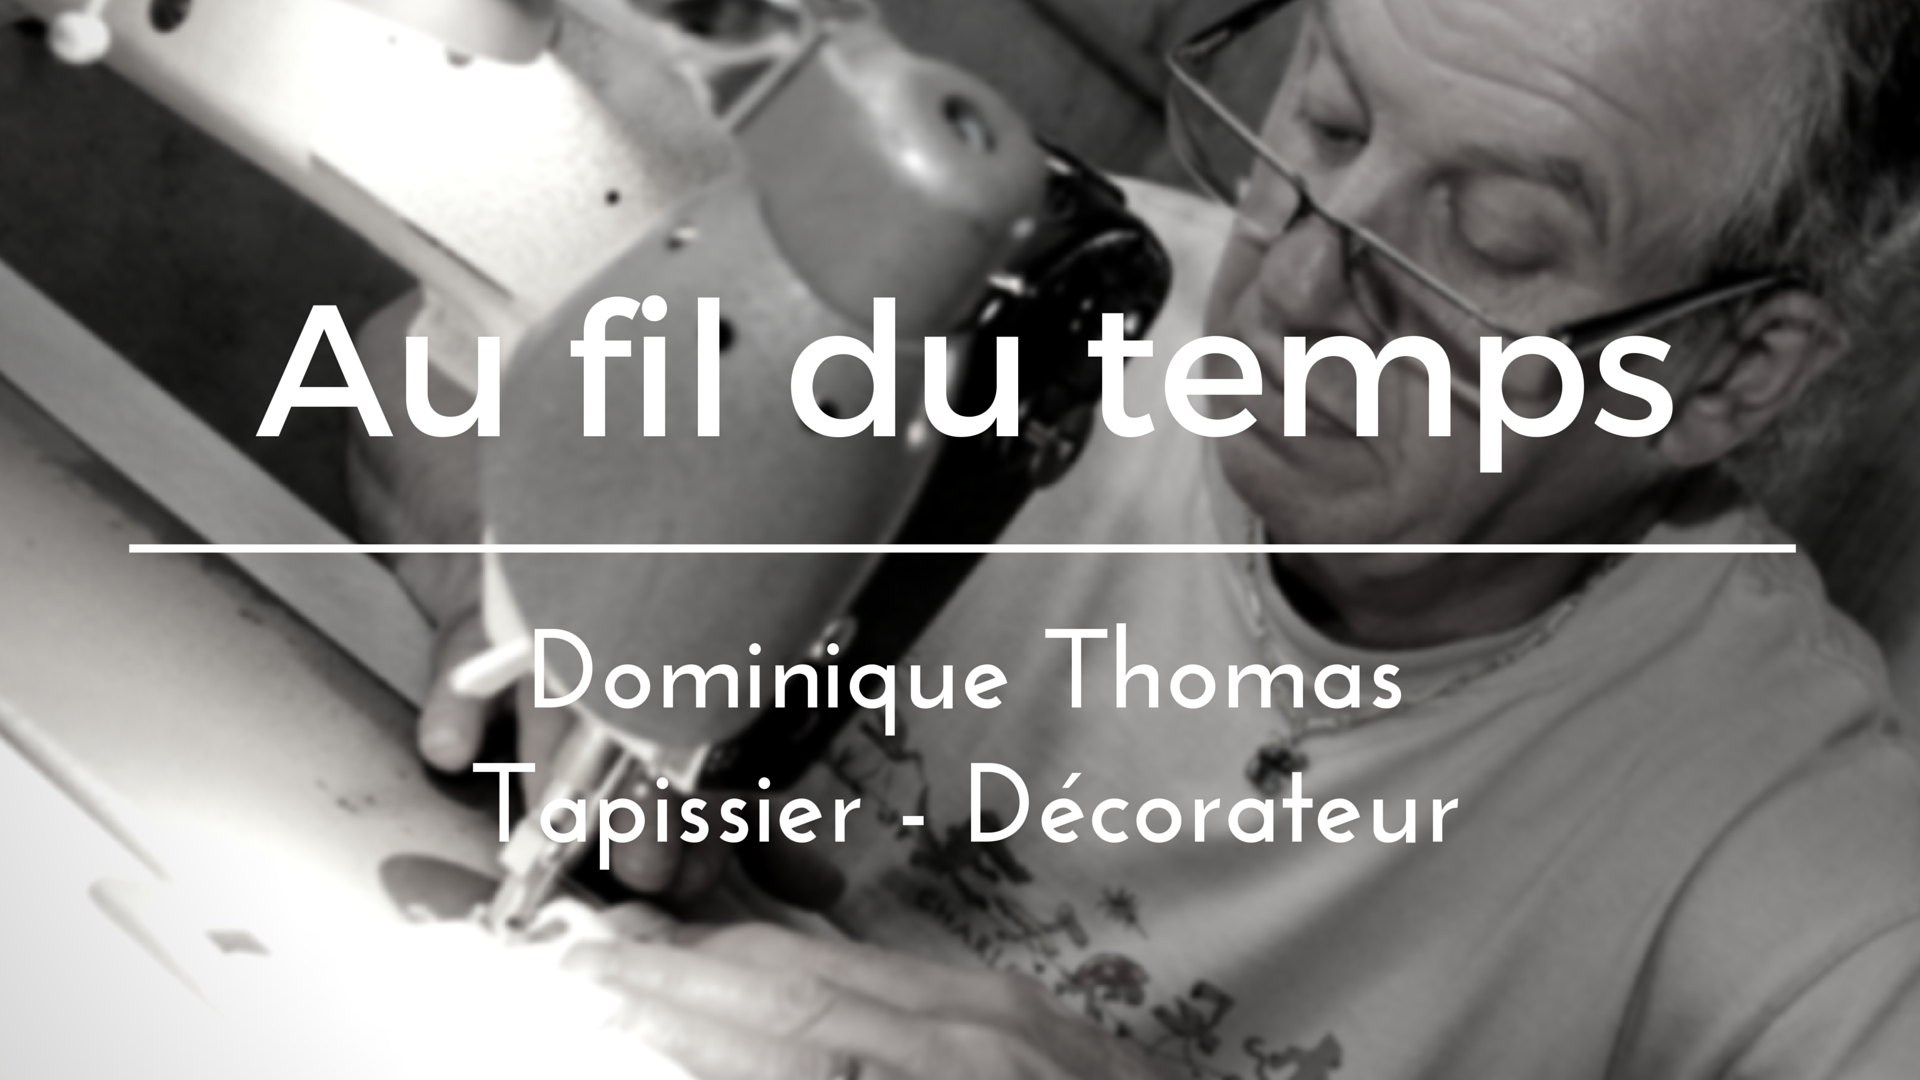 Dominique Thomas Tapissier - Décorateur